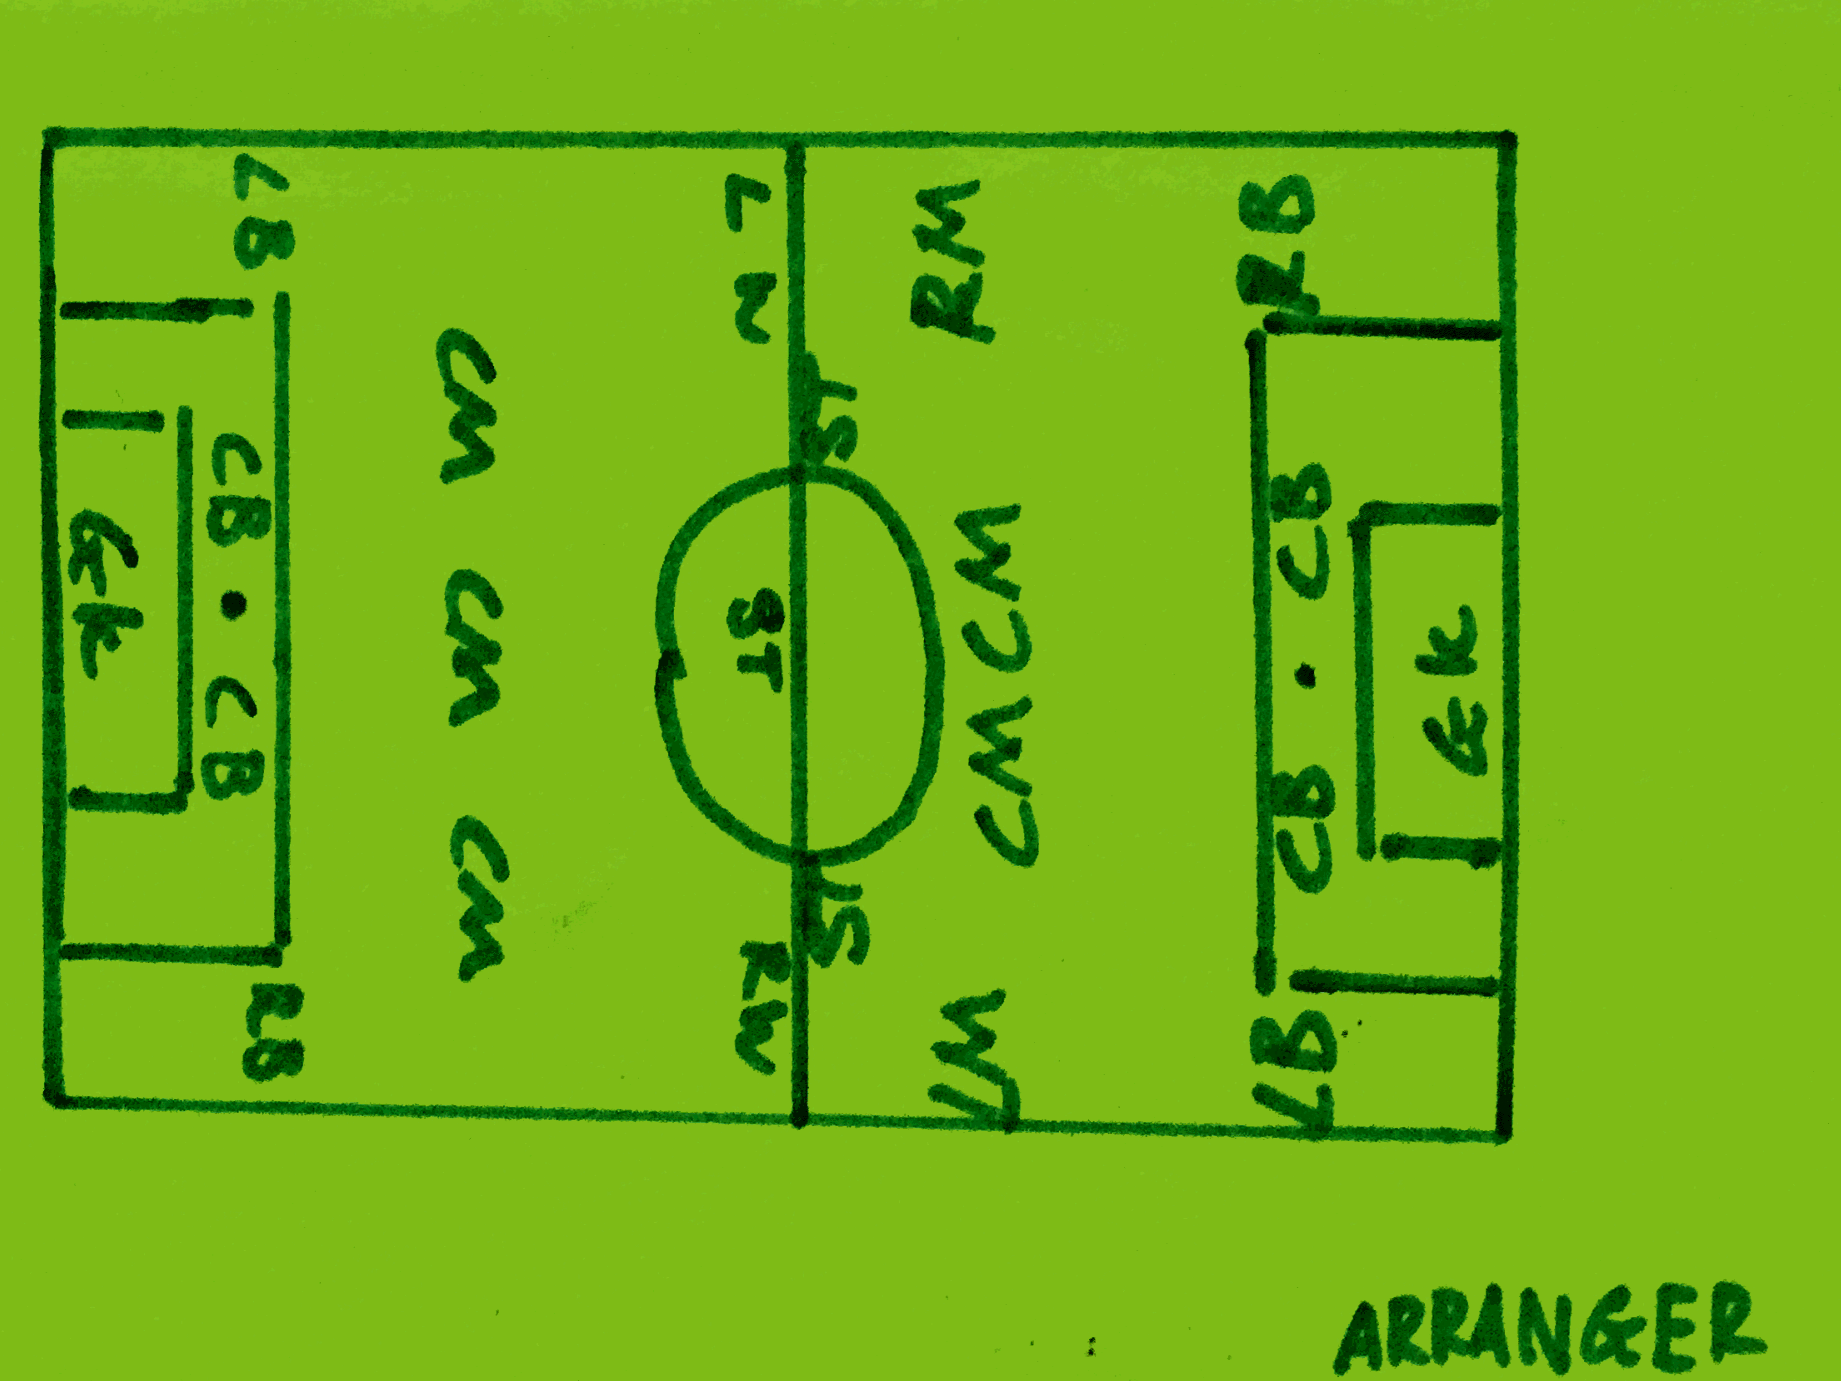 Arranger Strengthsfinder Singapore Playing Field Layout